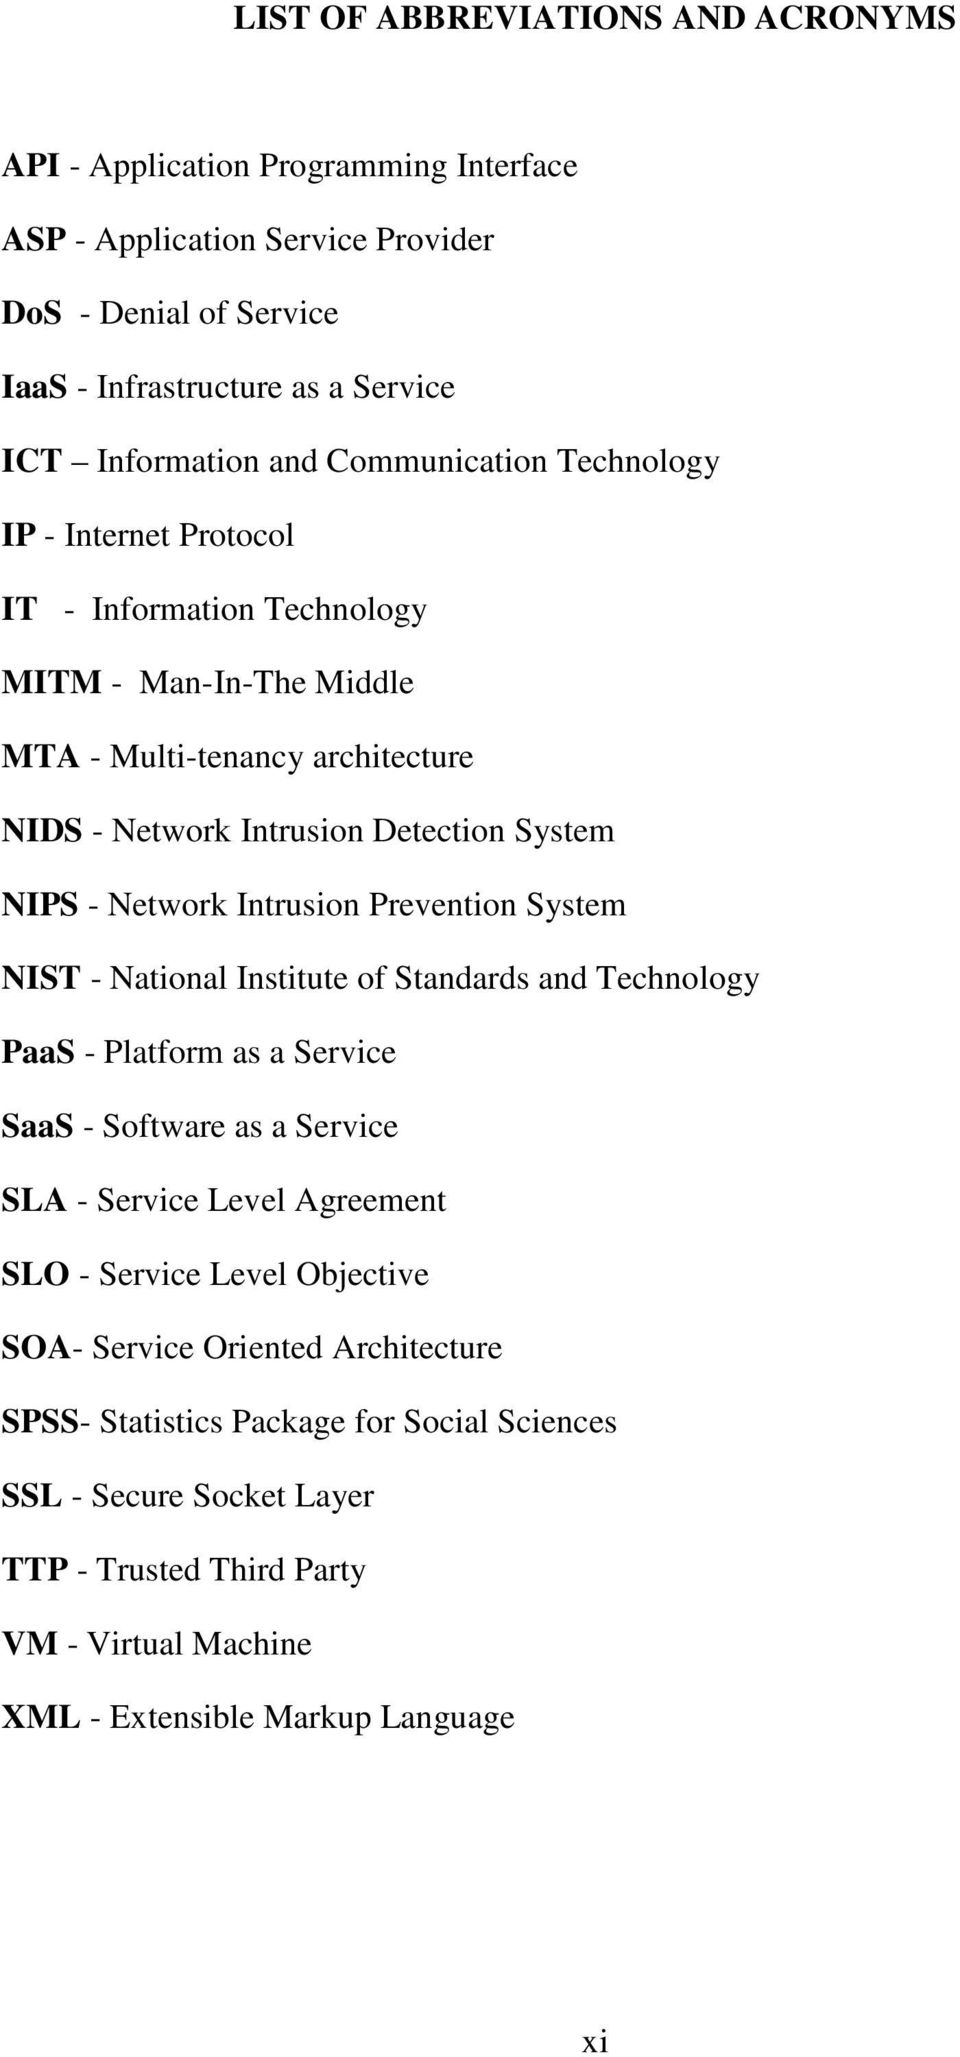 Intrusion Prevention System NIST - National Institute of Standards and Technology PaaS - Platform as a Service SaaS - Software as a Service SLA - Service Level Agreement SLO - Service Level